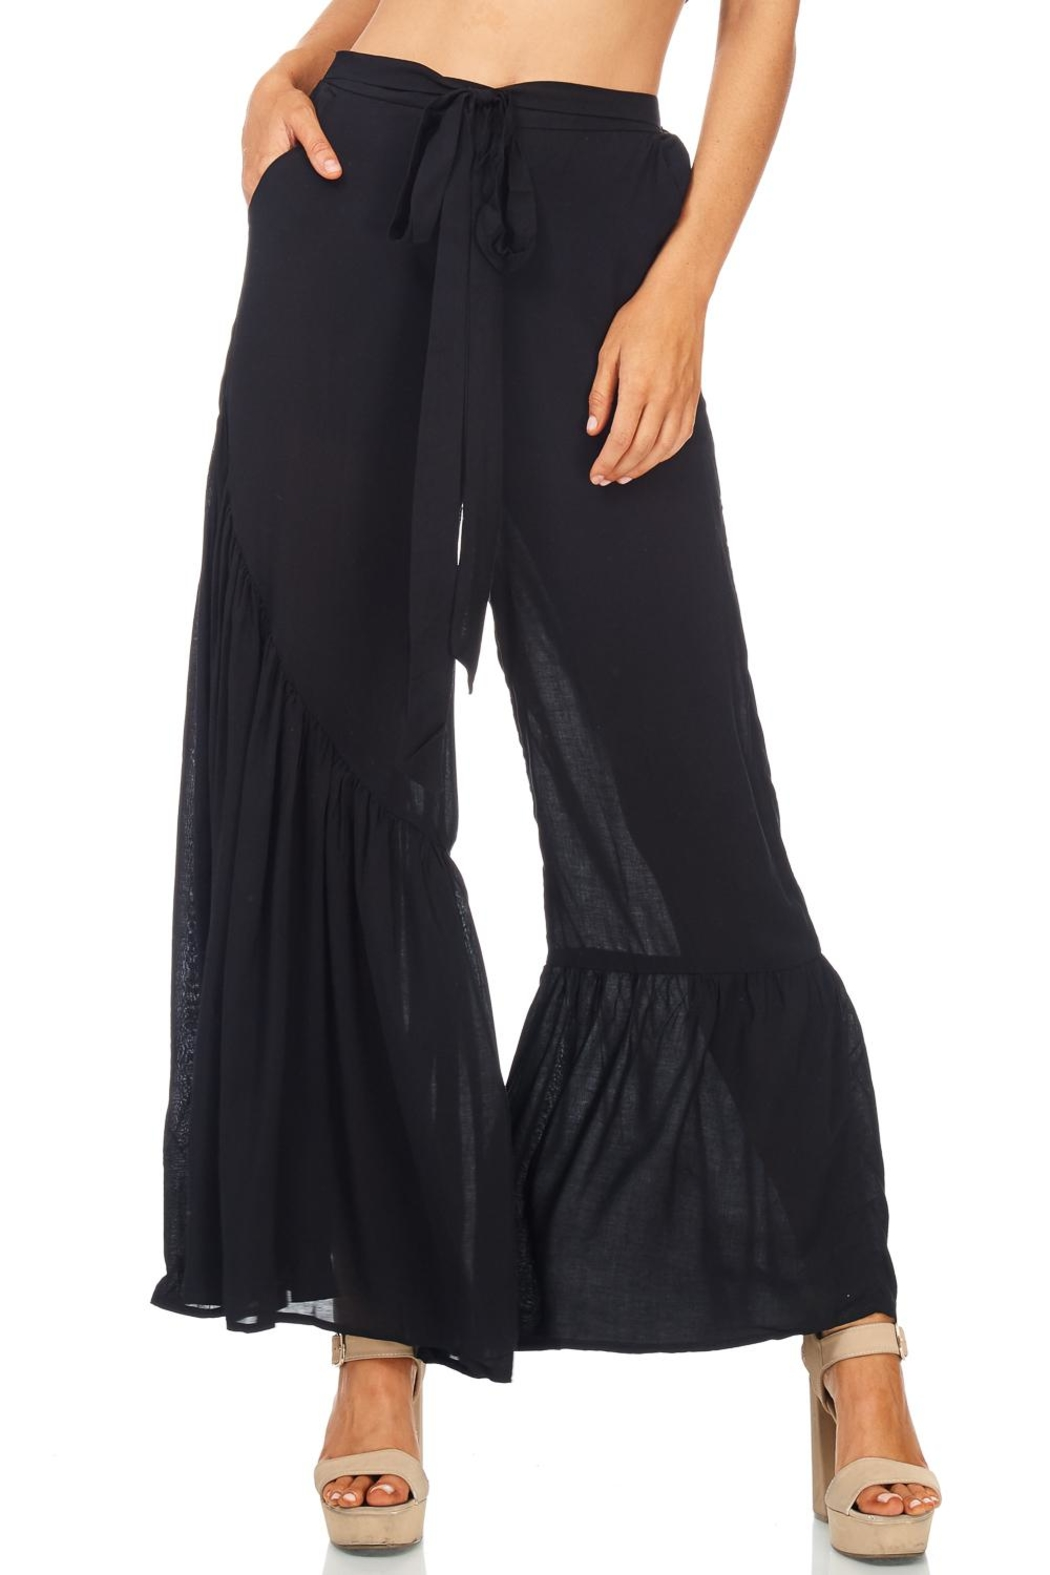 Favlux Bell Bottom Pants - Main Image